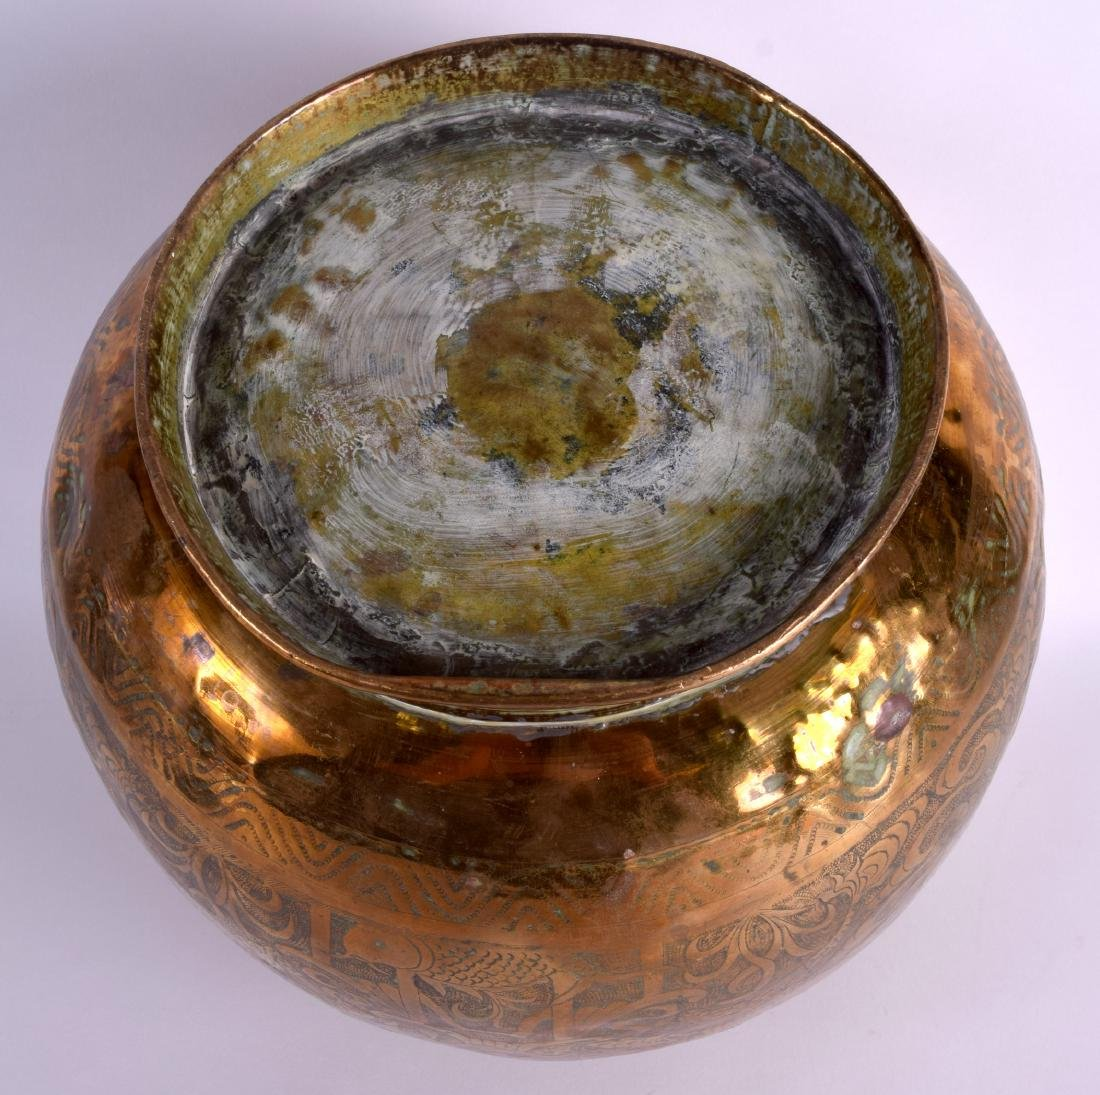 A LARGE 19TH CENTURY CHINESE BULBOUS ENGRAVED BRASS - 5